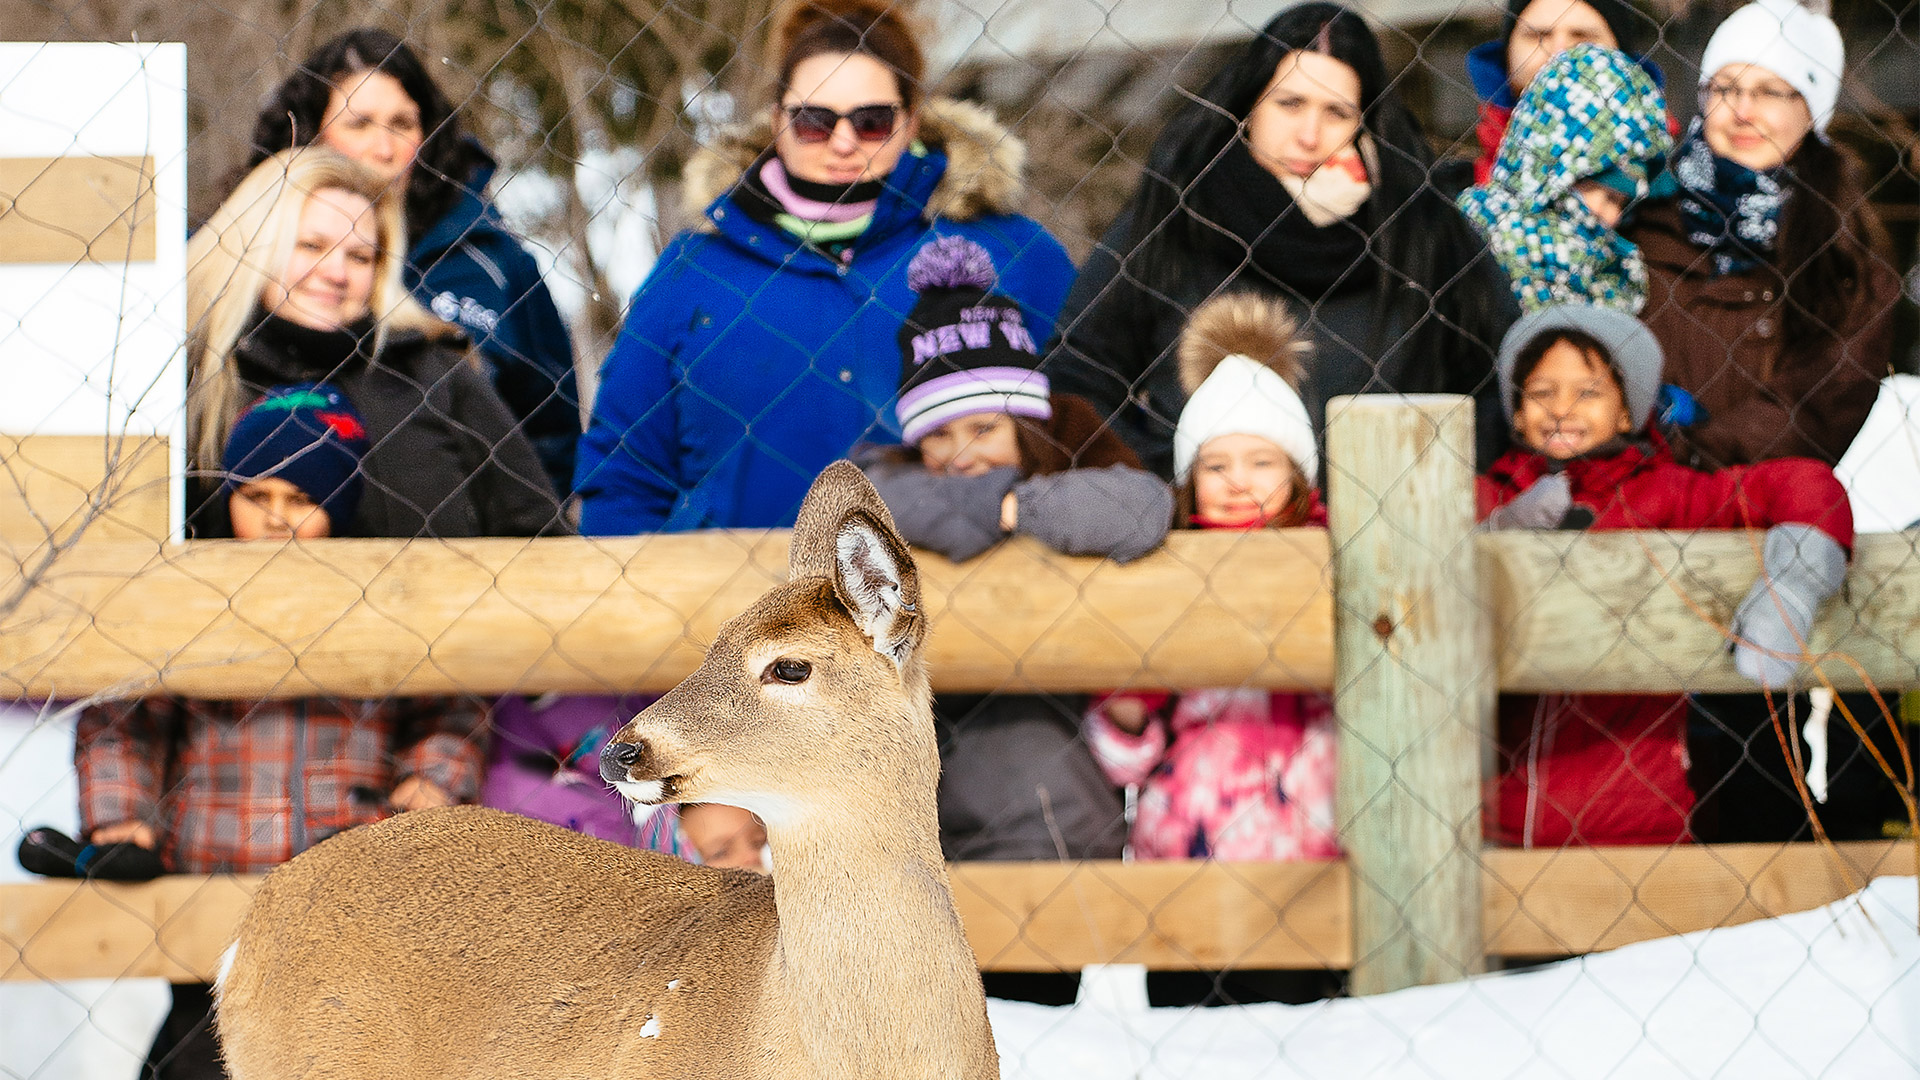 Ecomuseum Zoo visitors looking at a deer